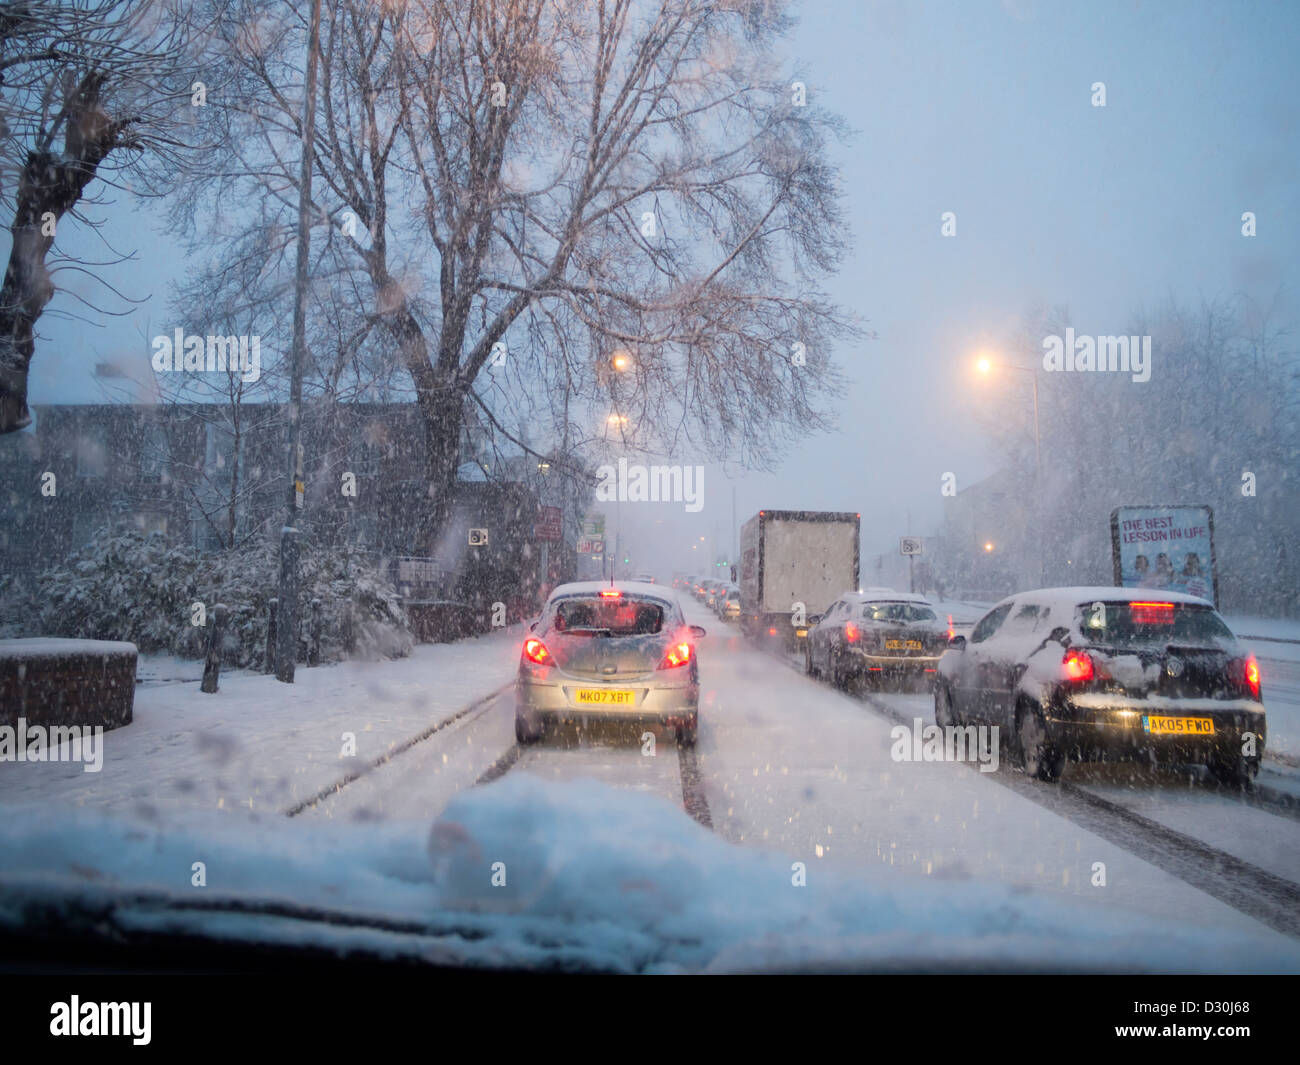 Cars stuck in snow storm during bad weather causing traffic chaos in South Yorkshire England February 2013 - Stock Image